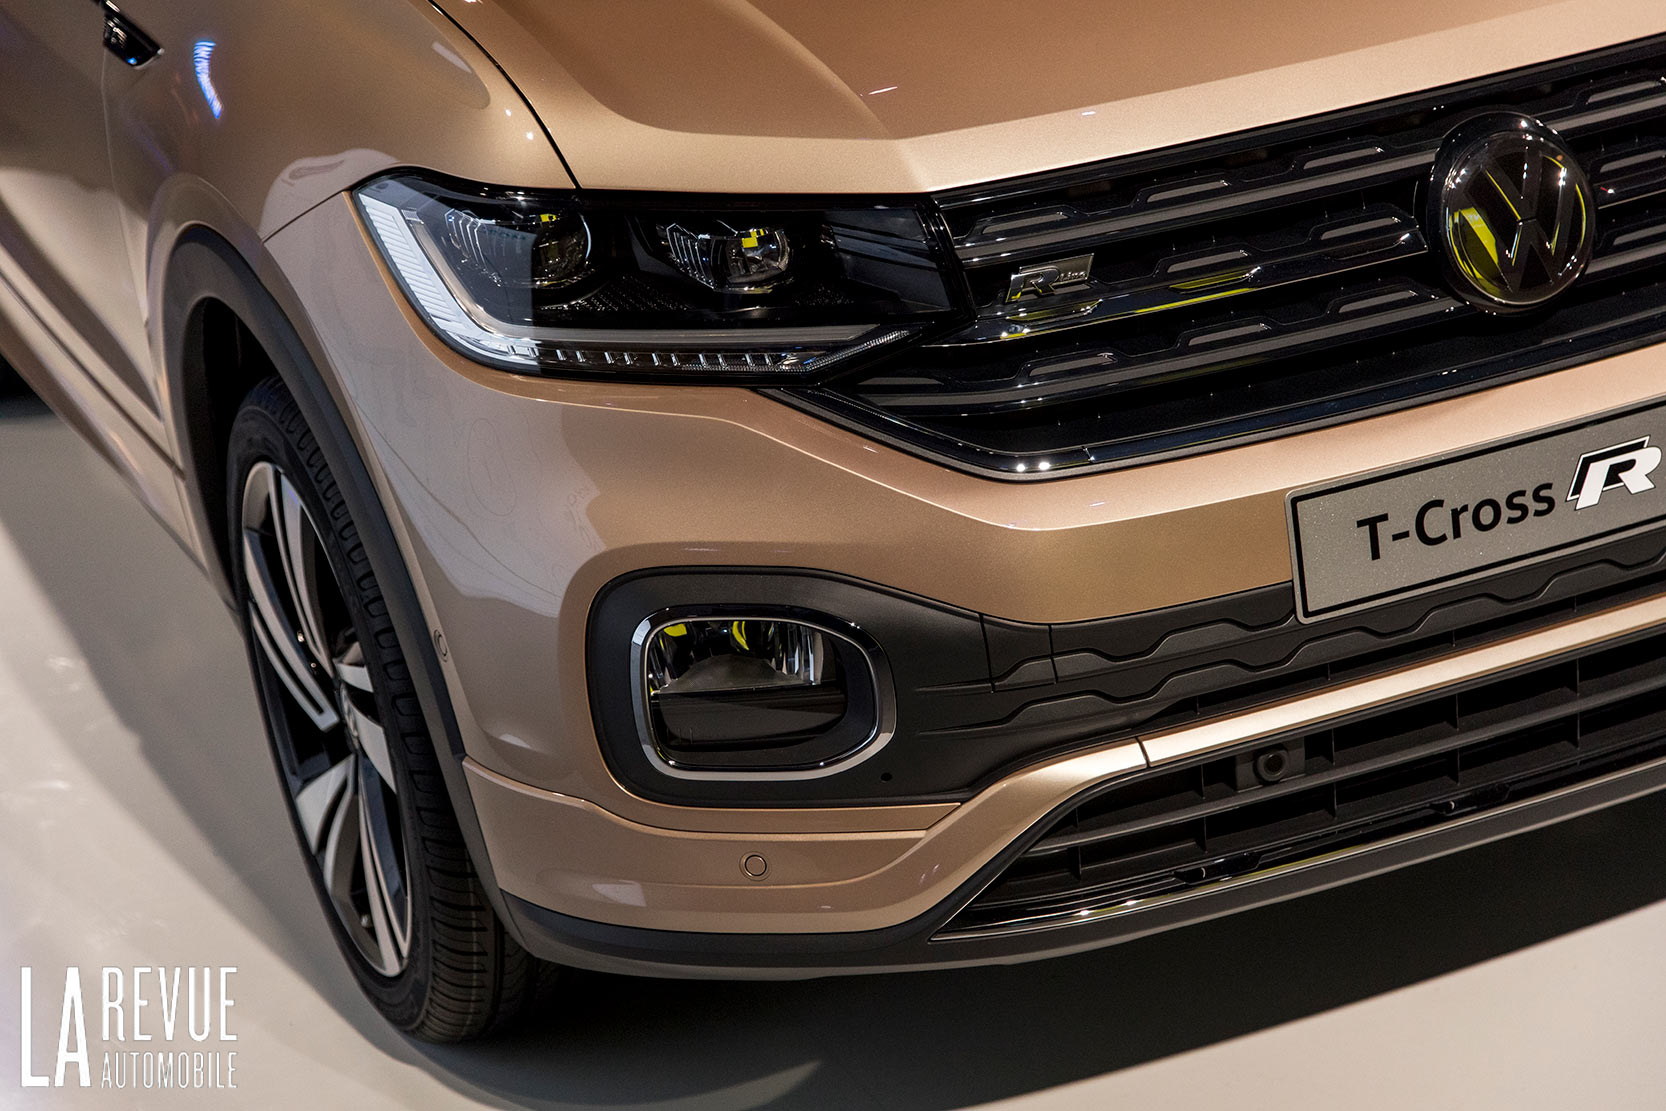 Exterieur_Volkswagen-T-Cross-Reveal_9